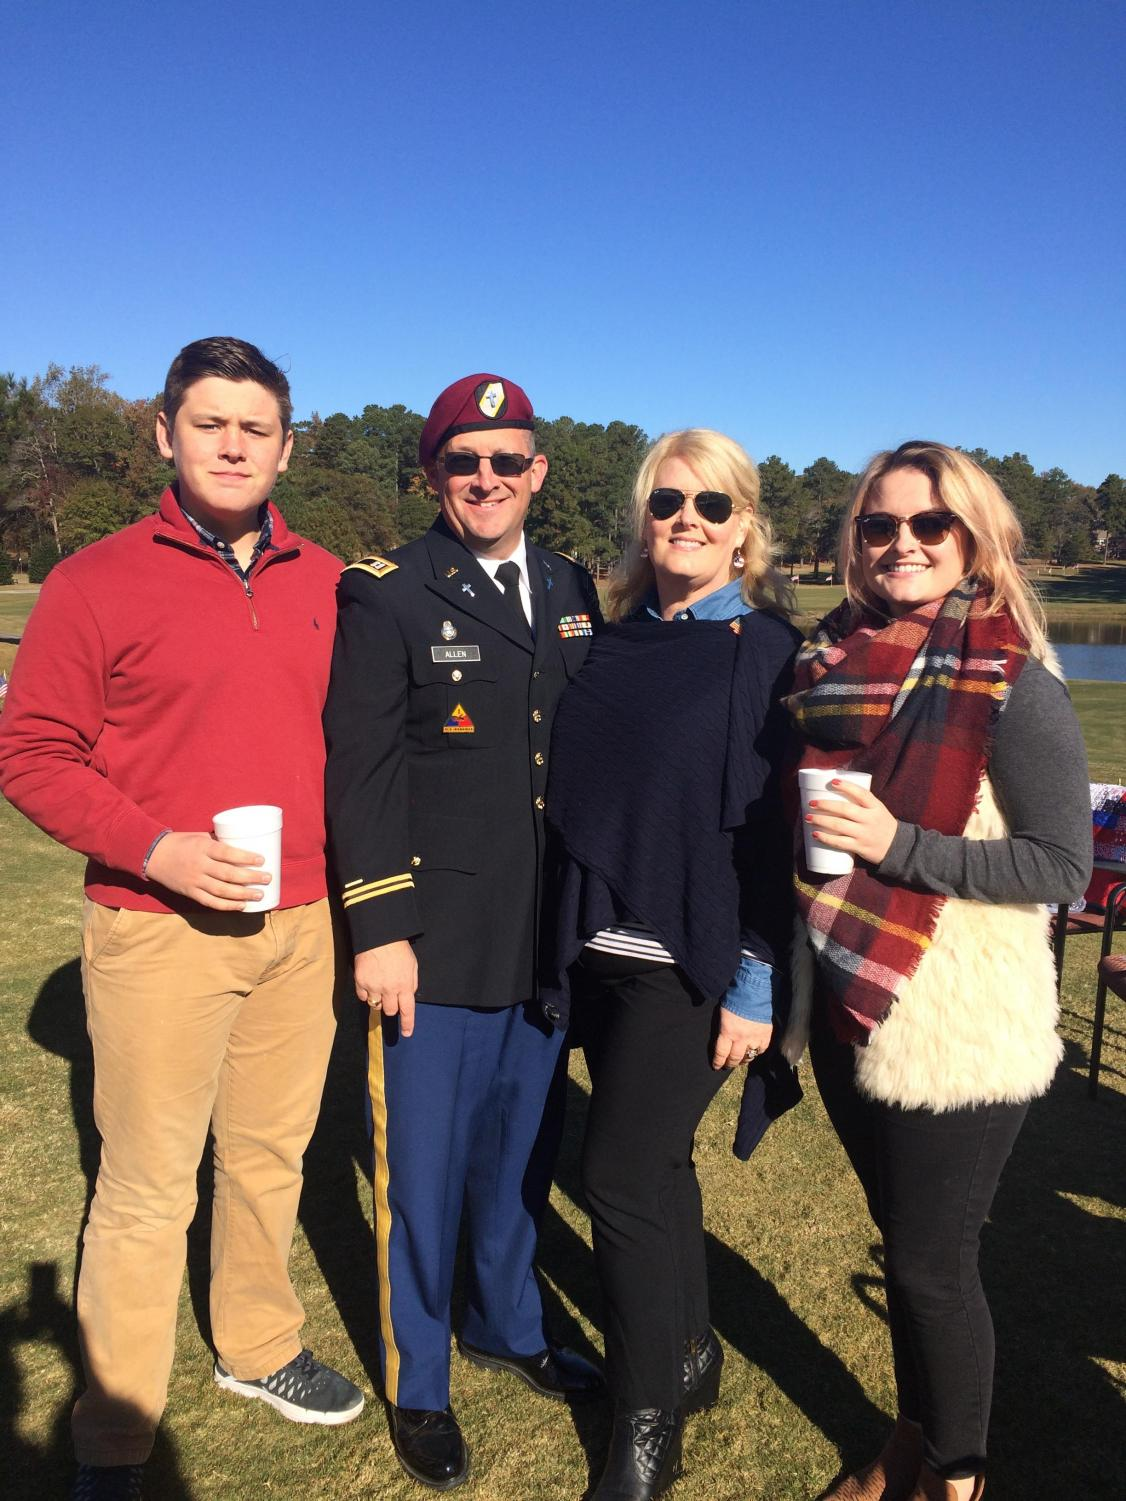 Protecting our country each day, Captain Allen, Henry's dad, is stationed at Fort Bragg alongside hundreds of men and women who fight for our freedom. Memorial Day weekend is a time to reflect on the sacrifice that these men and women make everyday for our freedom.